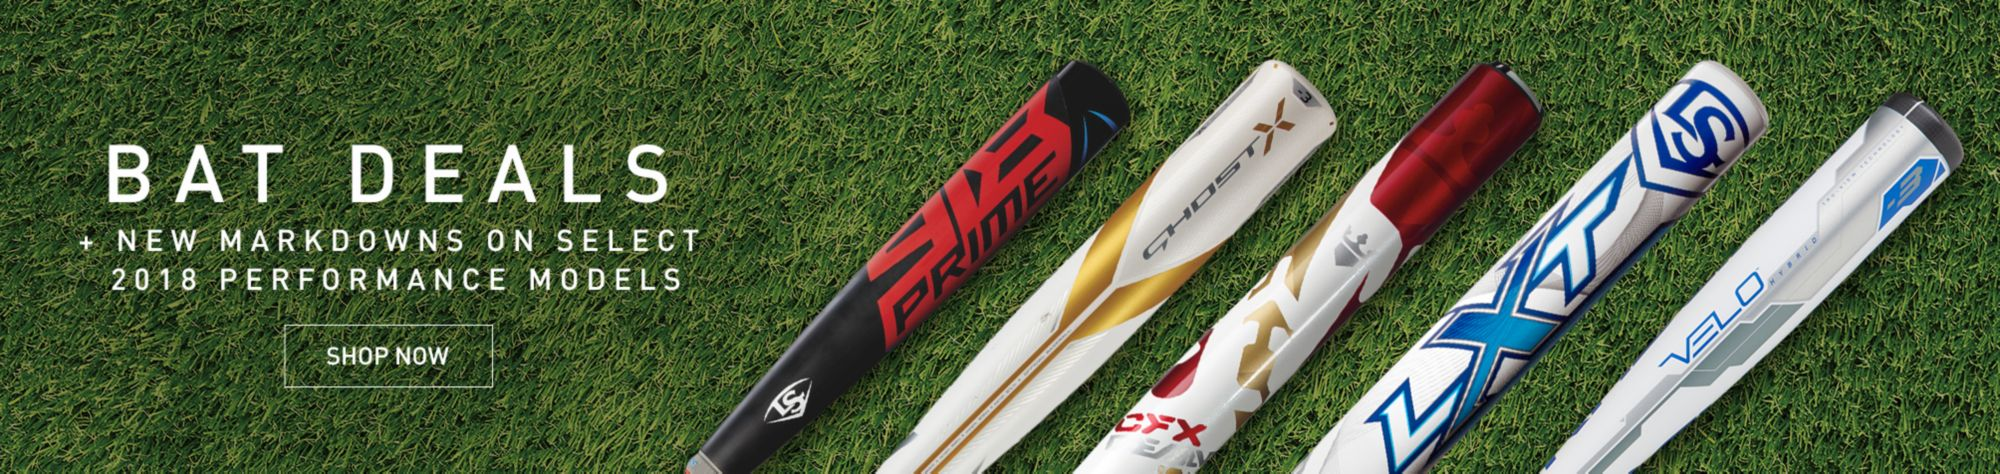 BAT DEALS + New Markdowns on Select 2018 Performance Models SHOP NOW